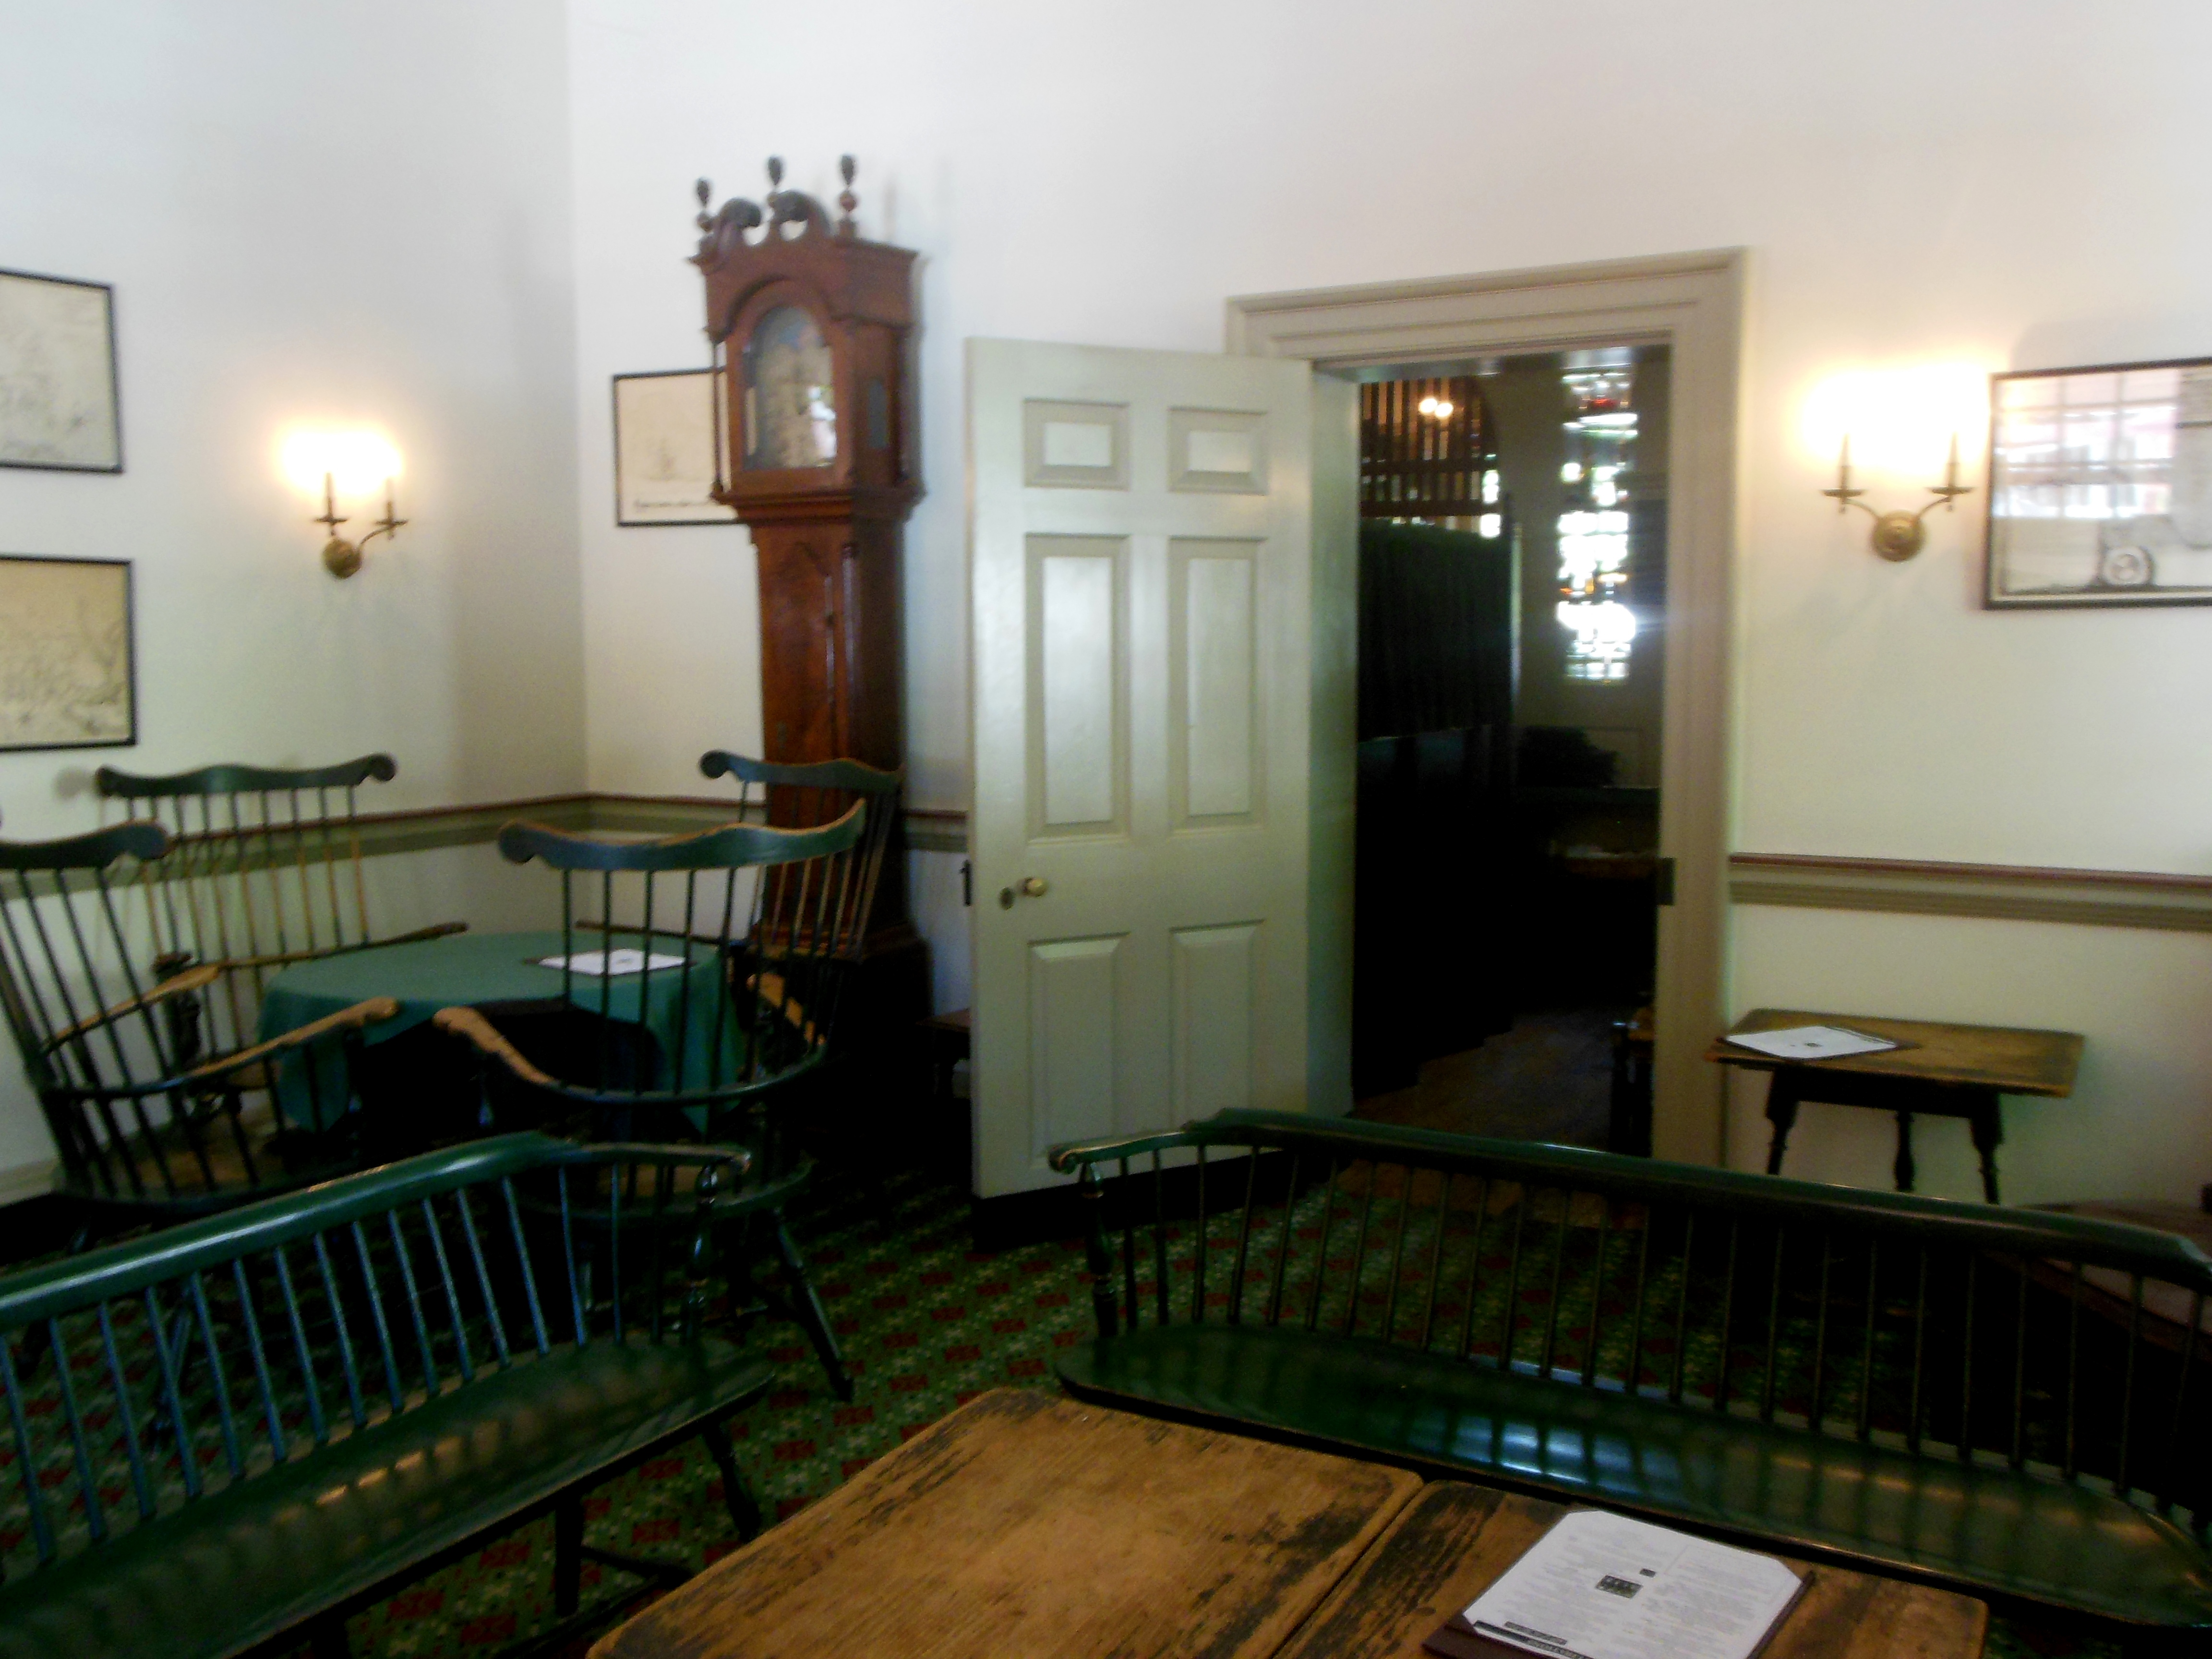 Entering City Tavern, you'll find the Subscription Room on your right,  where tavern-goers read magazines and newspapers from around the world.